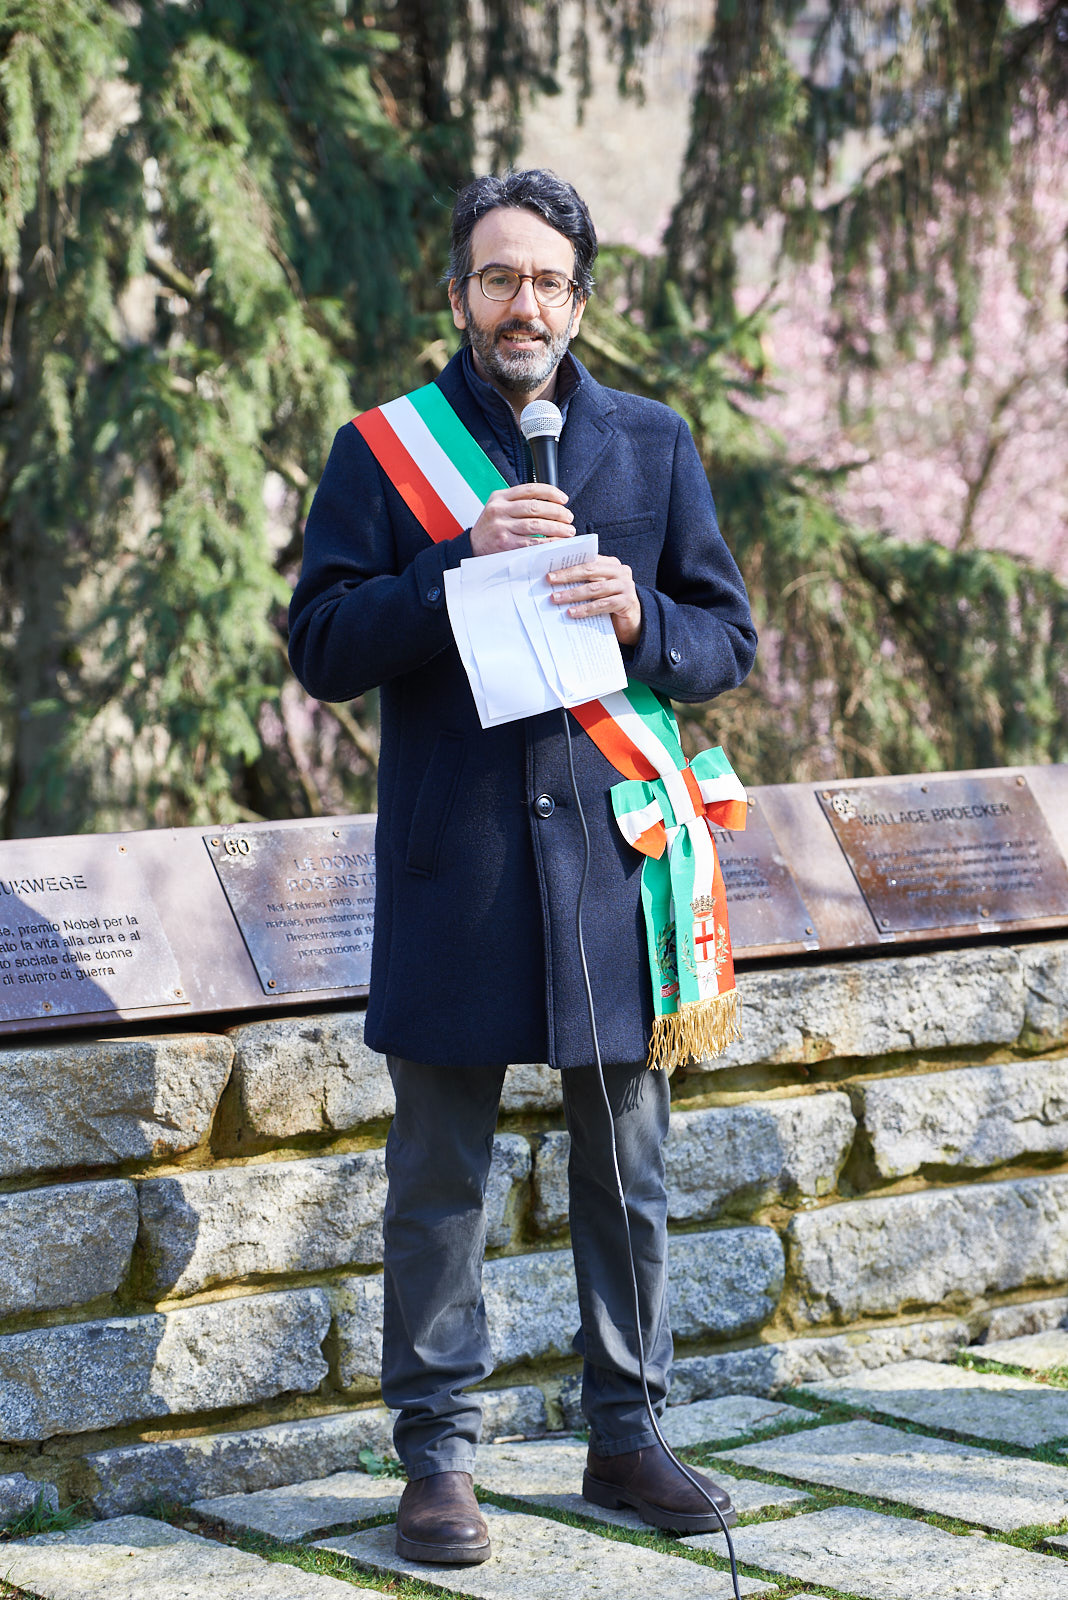 Speech by Lamberto Bertolé, president of Milan City Council